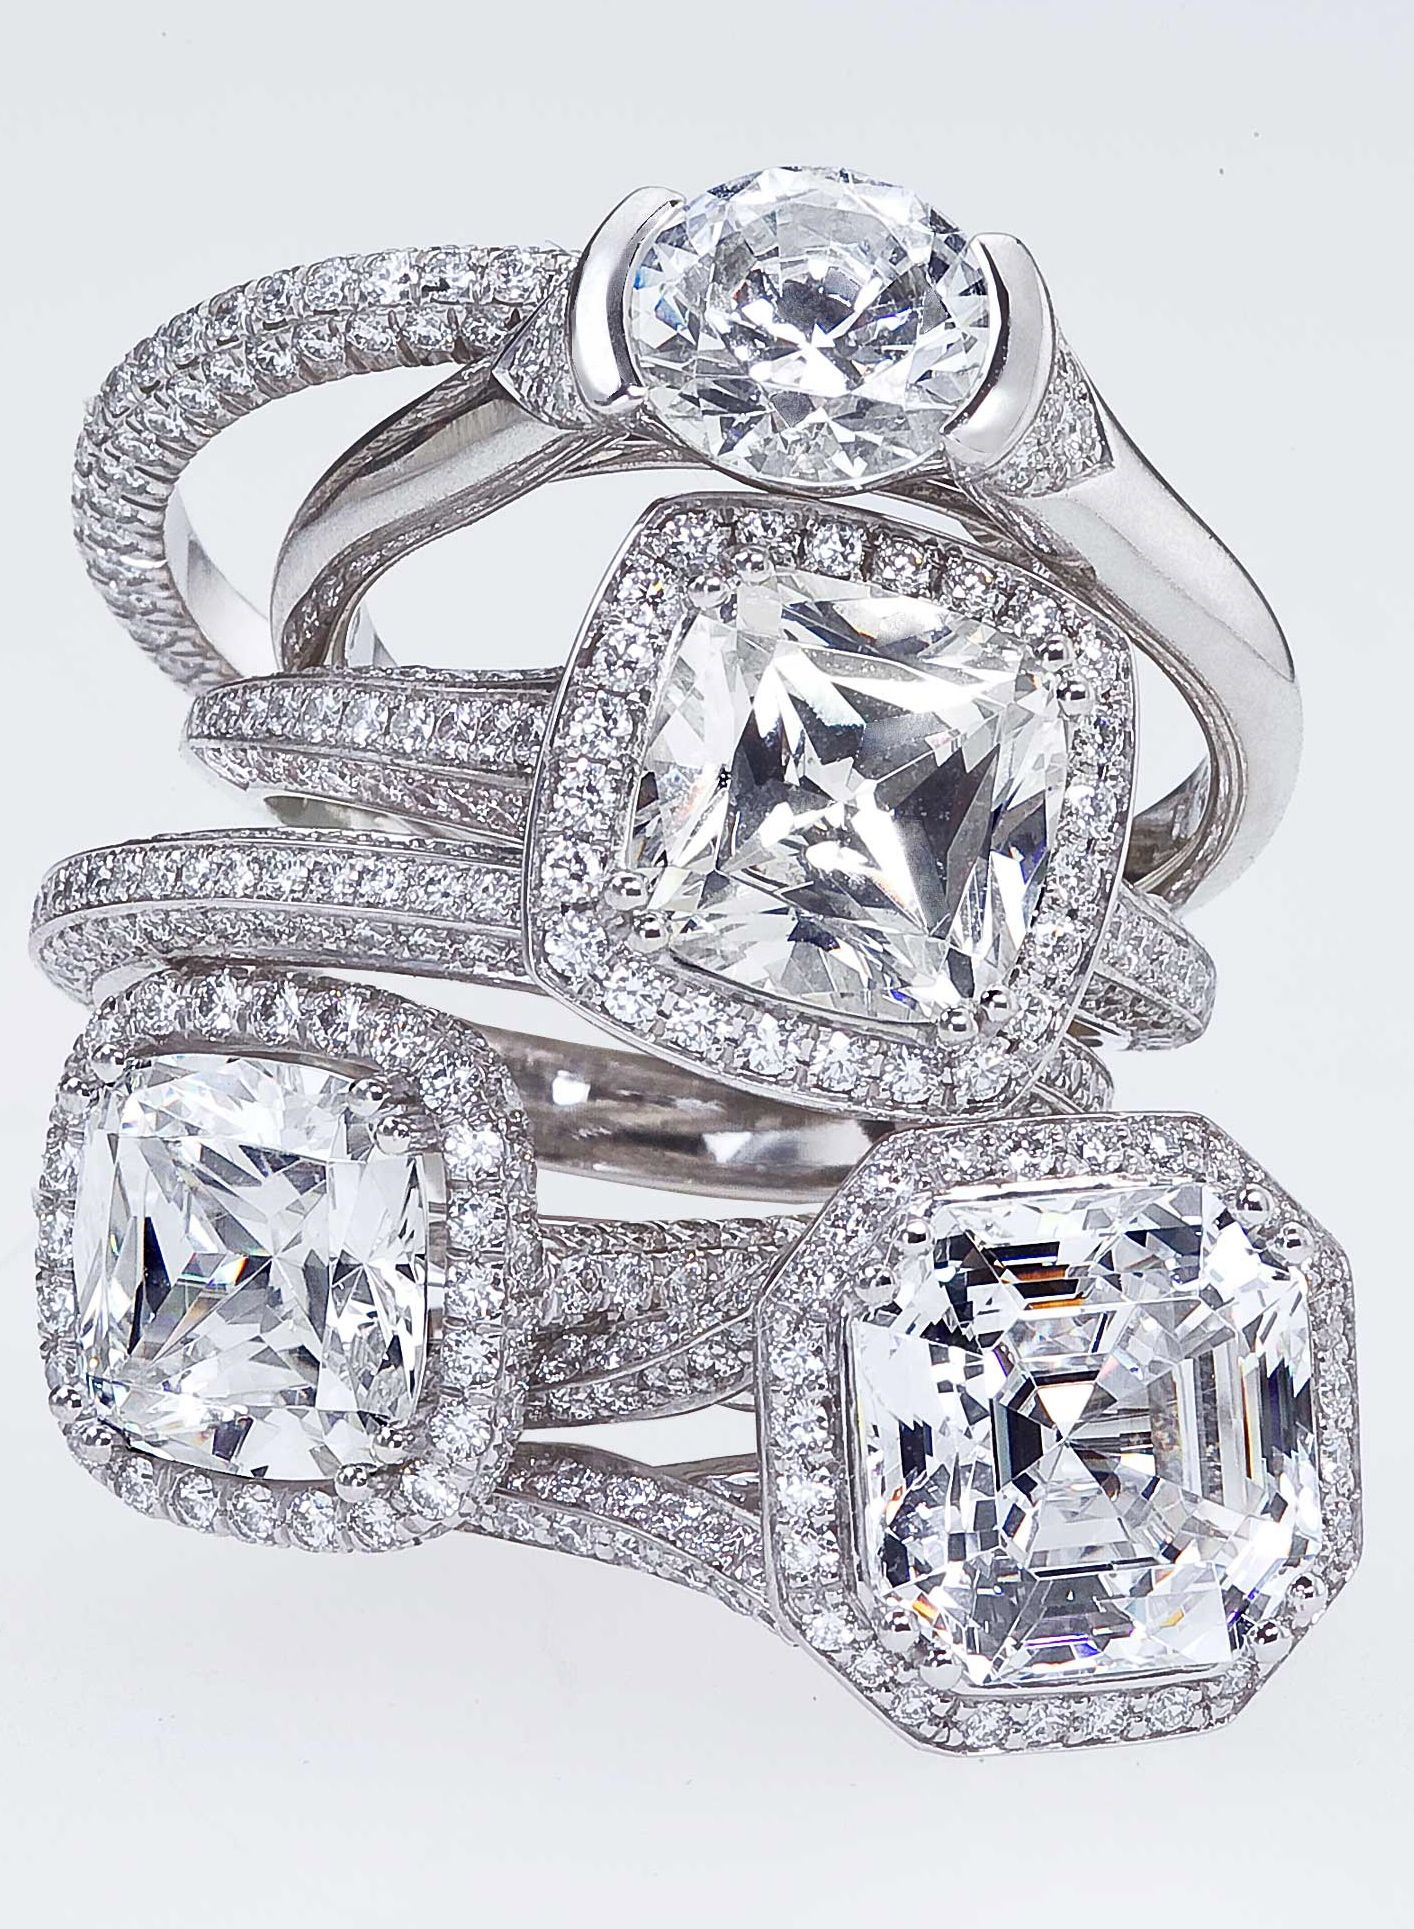 rings co diamond designers littleton engagement jewelry mark wedding bands page denver bridal patterson